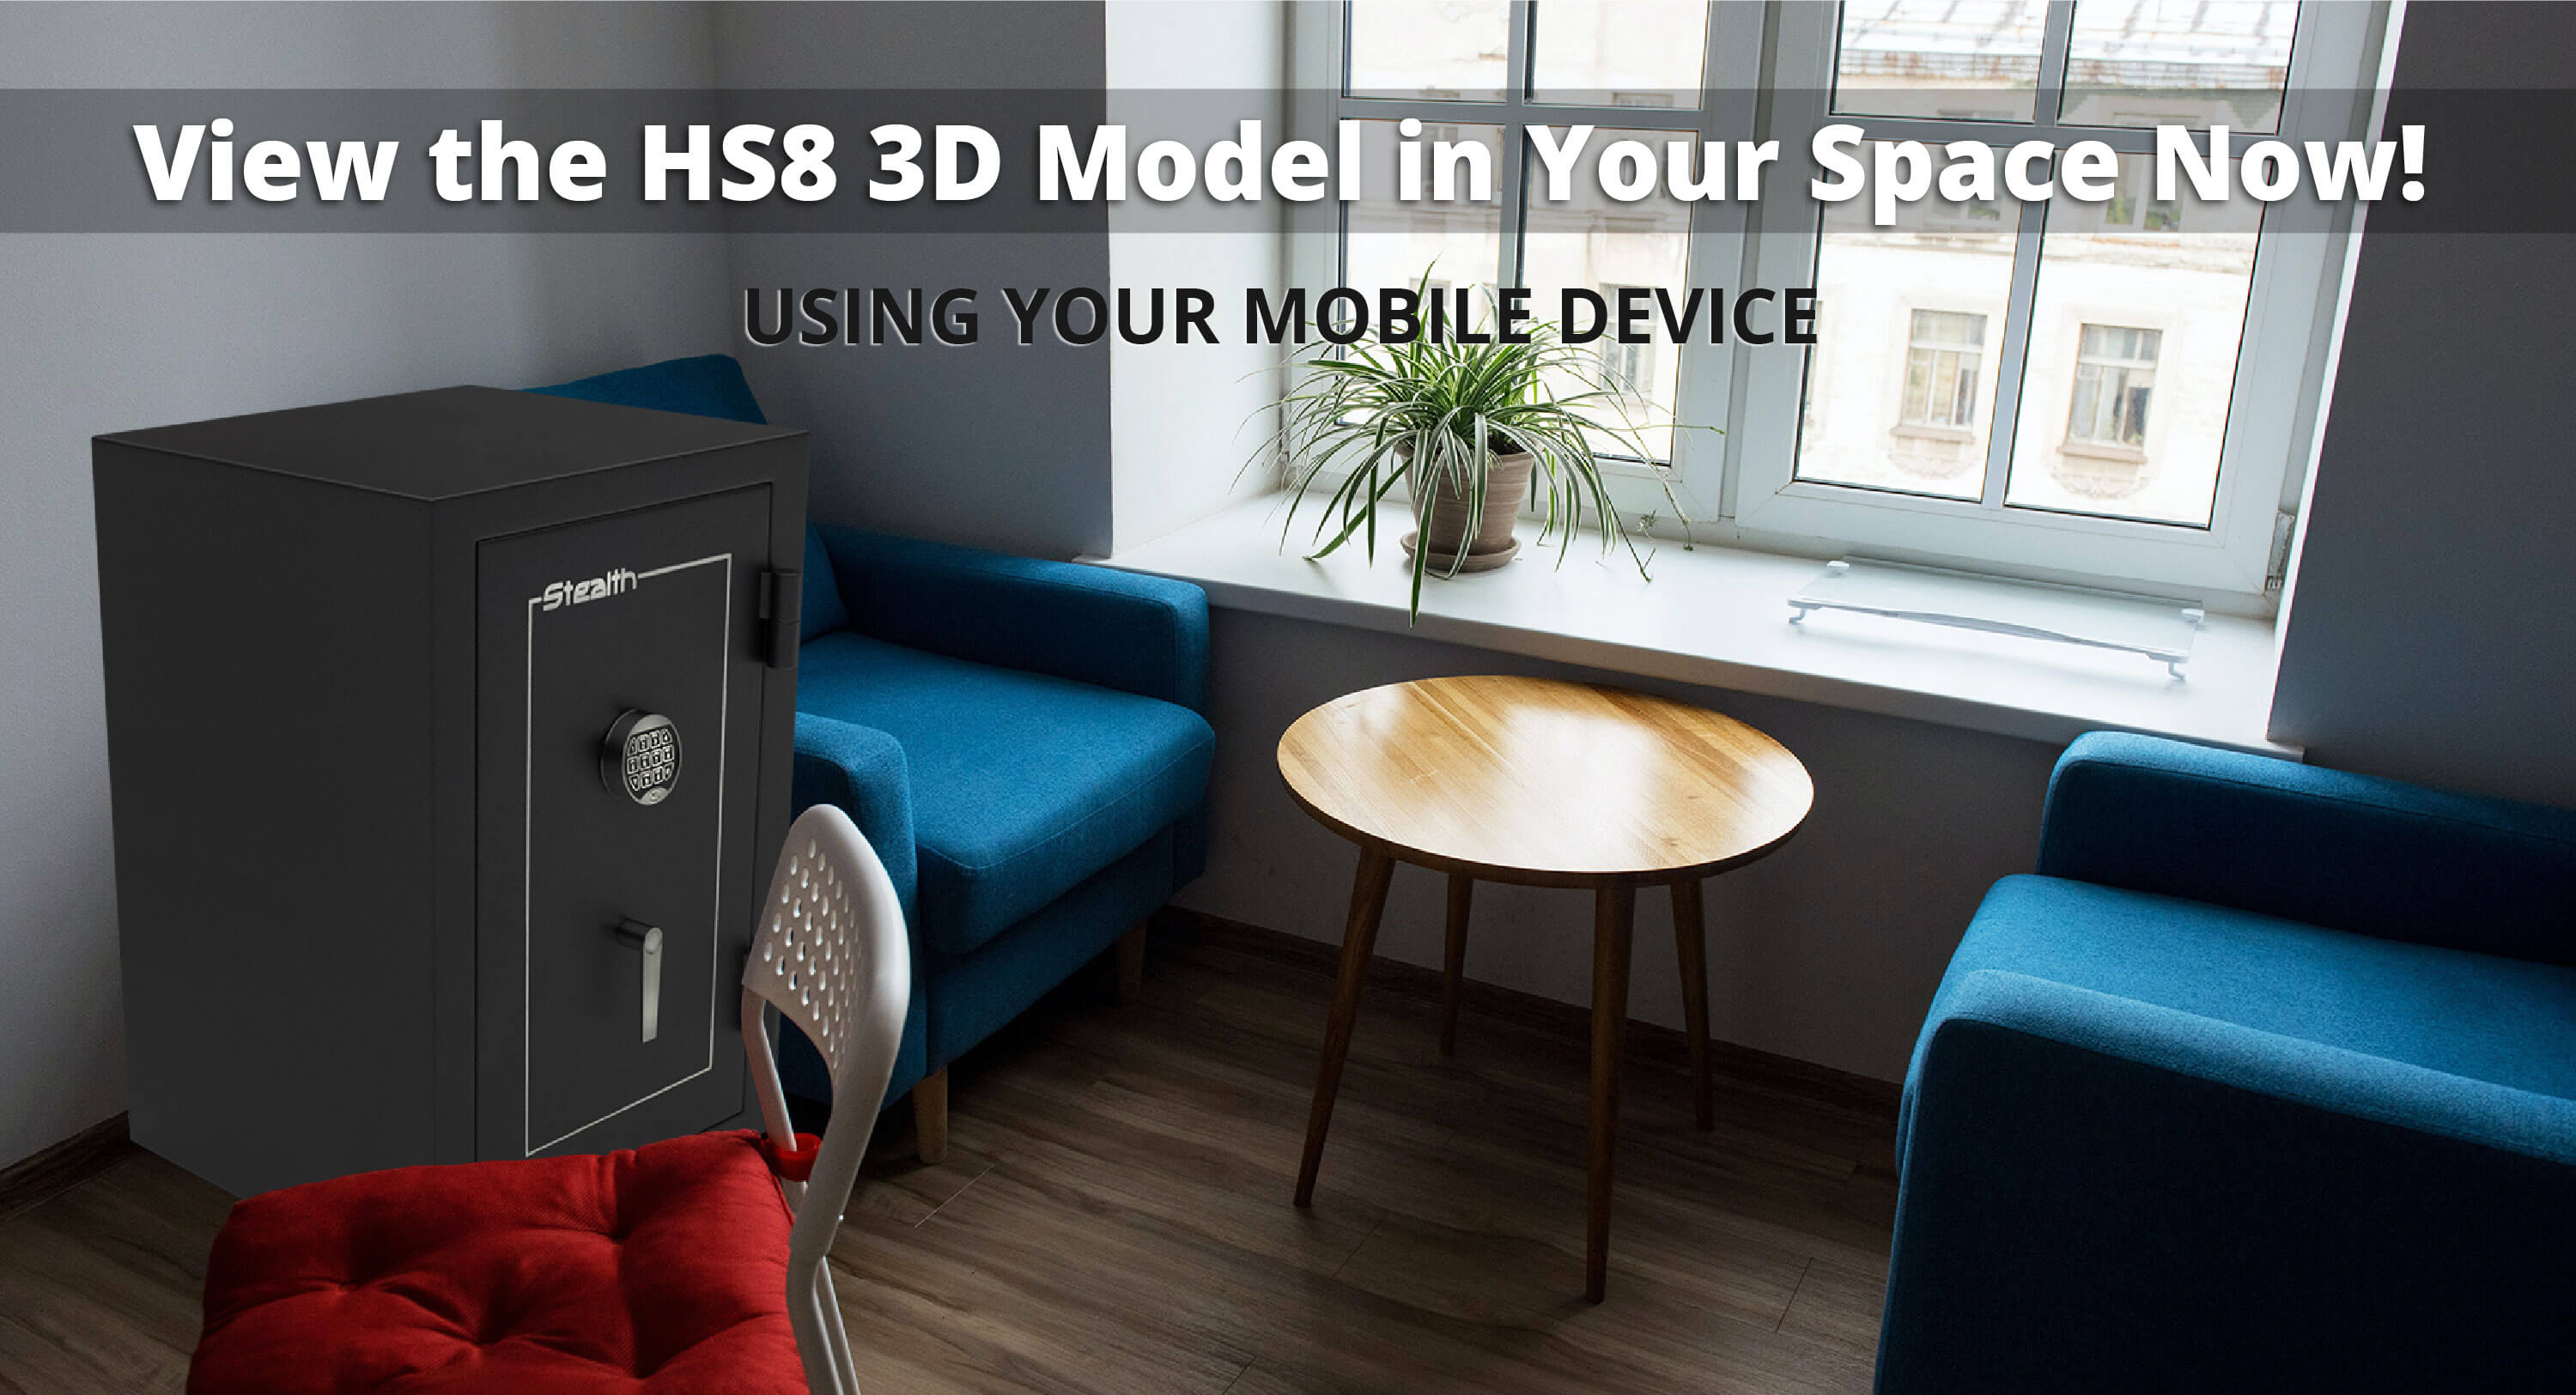 Stealth HS8 UL Home Safe 3D Model and Augmented Reality Experience Available